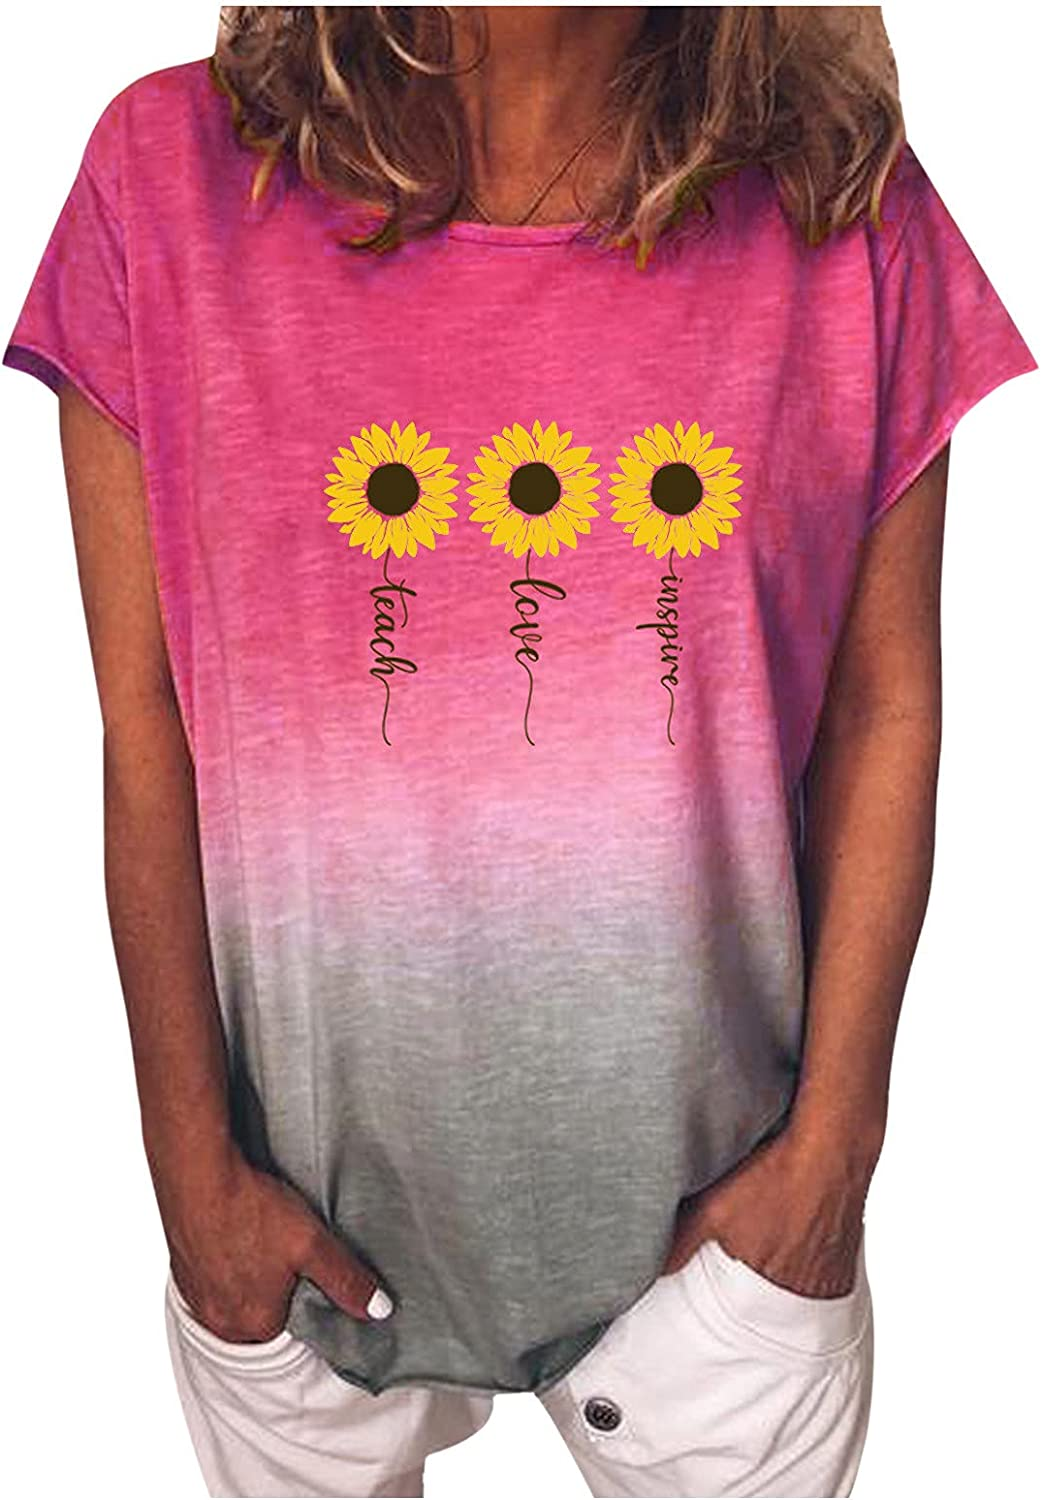 XINXX Summer Tops for Women Casual Short Sleeve Loose Fit Sunflower Graphic Tees Vintage Shirts Blouses